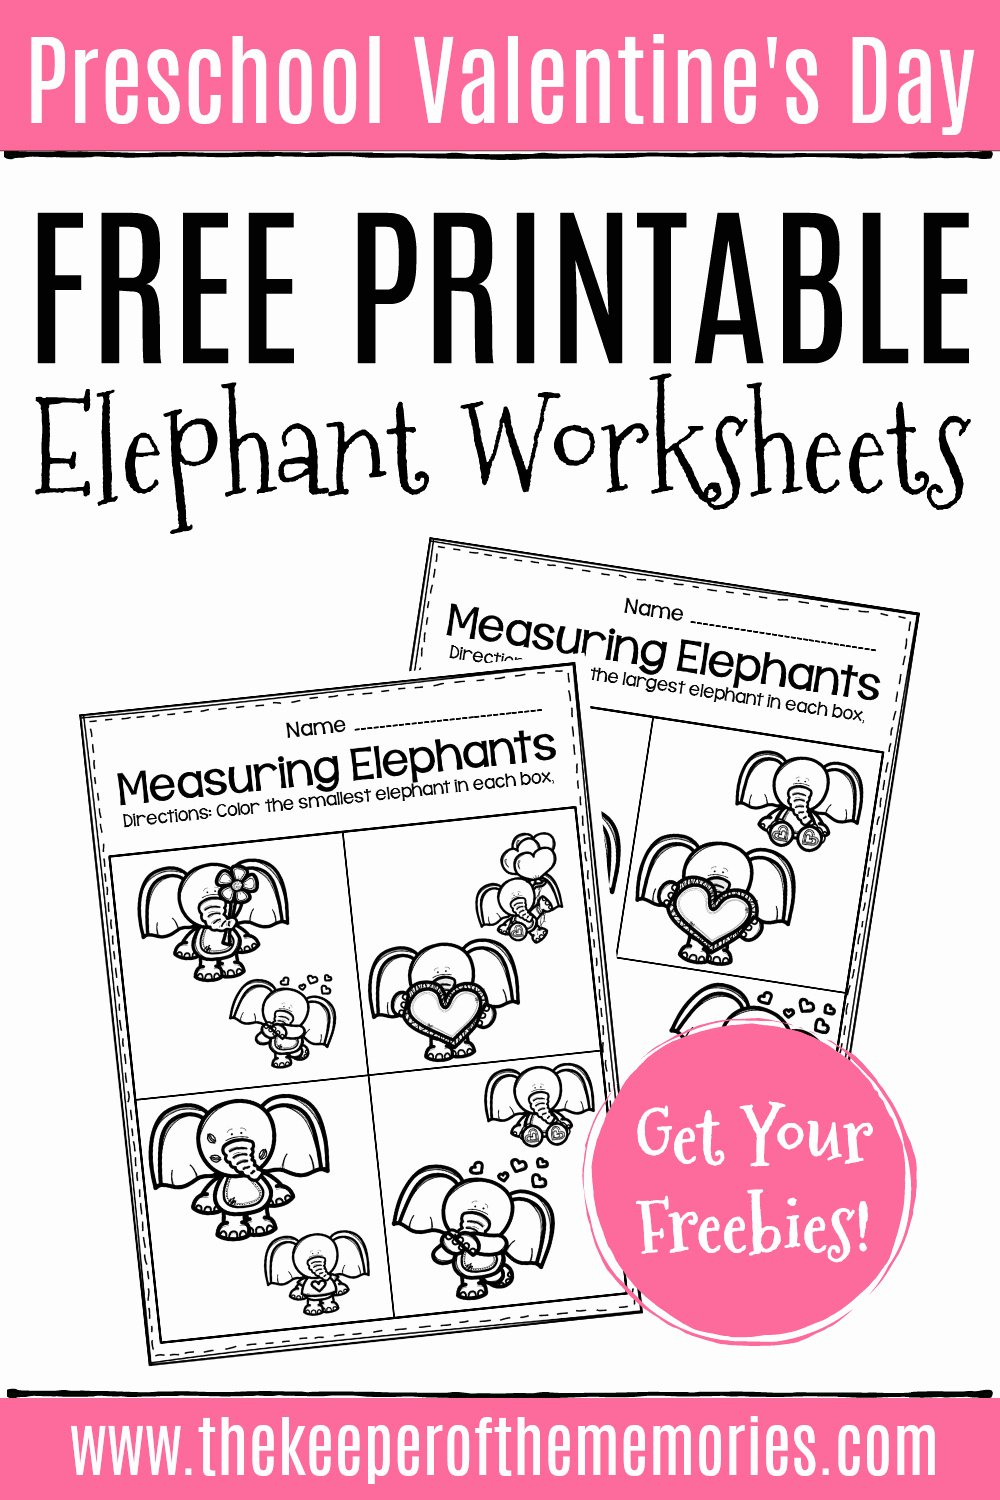 Elephant Worksheets for Preschoolers New Free Printable Elephant Valentine S Day Worksheets the